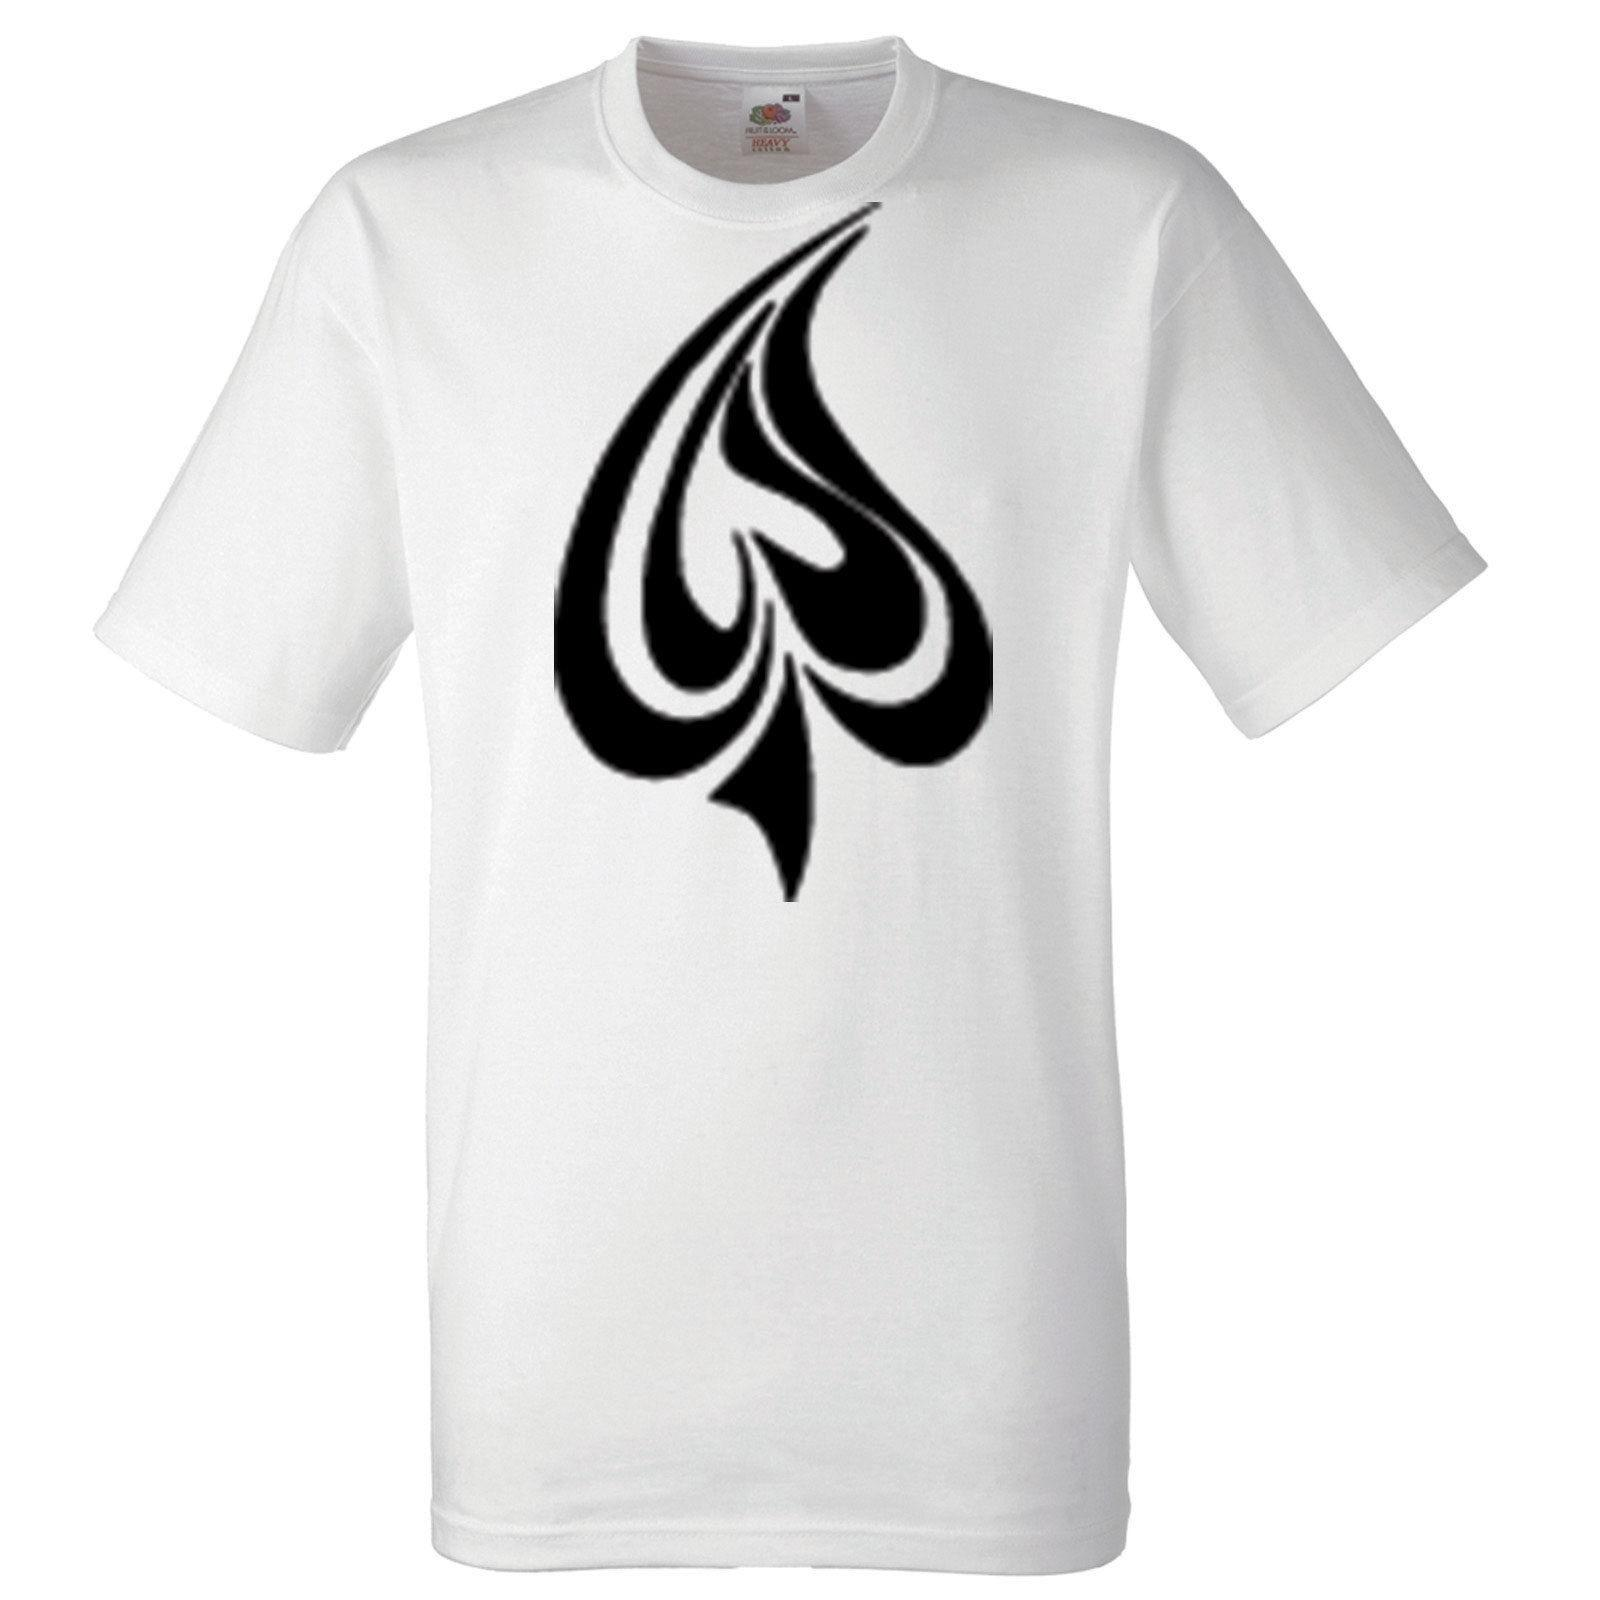 d94575cc TRIBAL T SHIRT DESIGN SERIES TATTOO STYLE TEE WHITE SHIRT HIPSTER 2dis335 T  Shirt Shirt Awesome T Shirts For Guys From Directwallartuk, $11.68   DHgate.Com